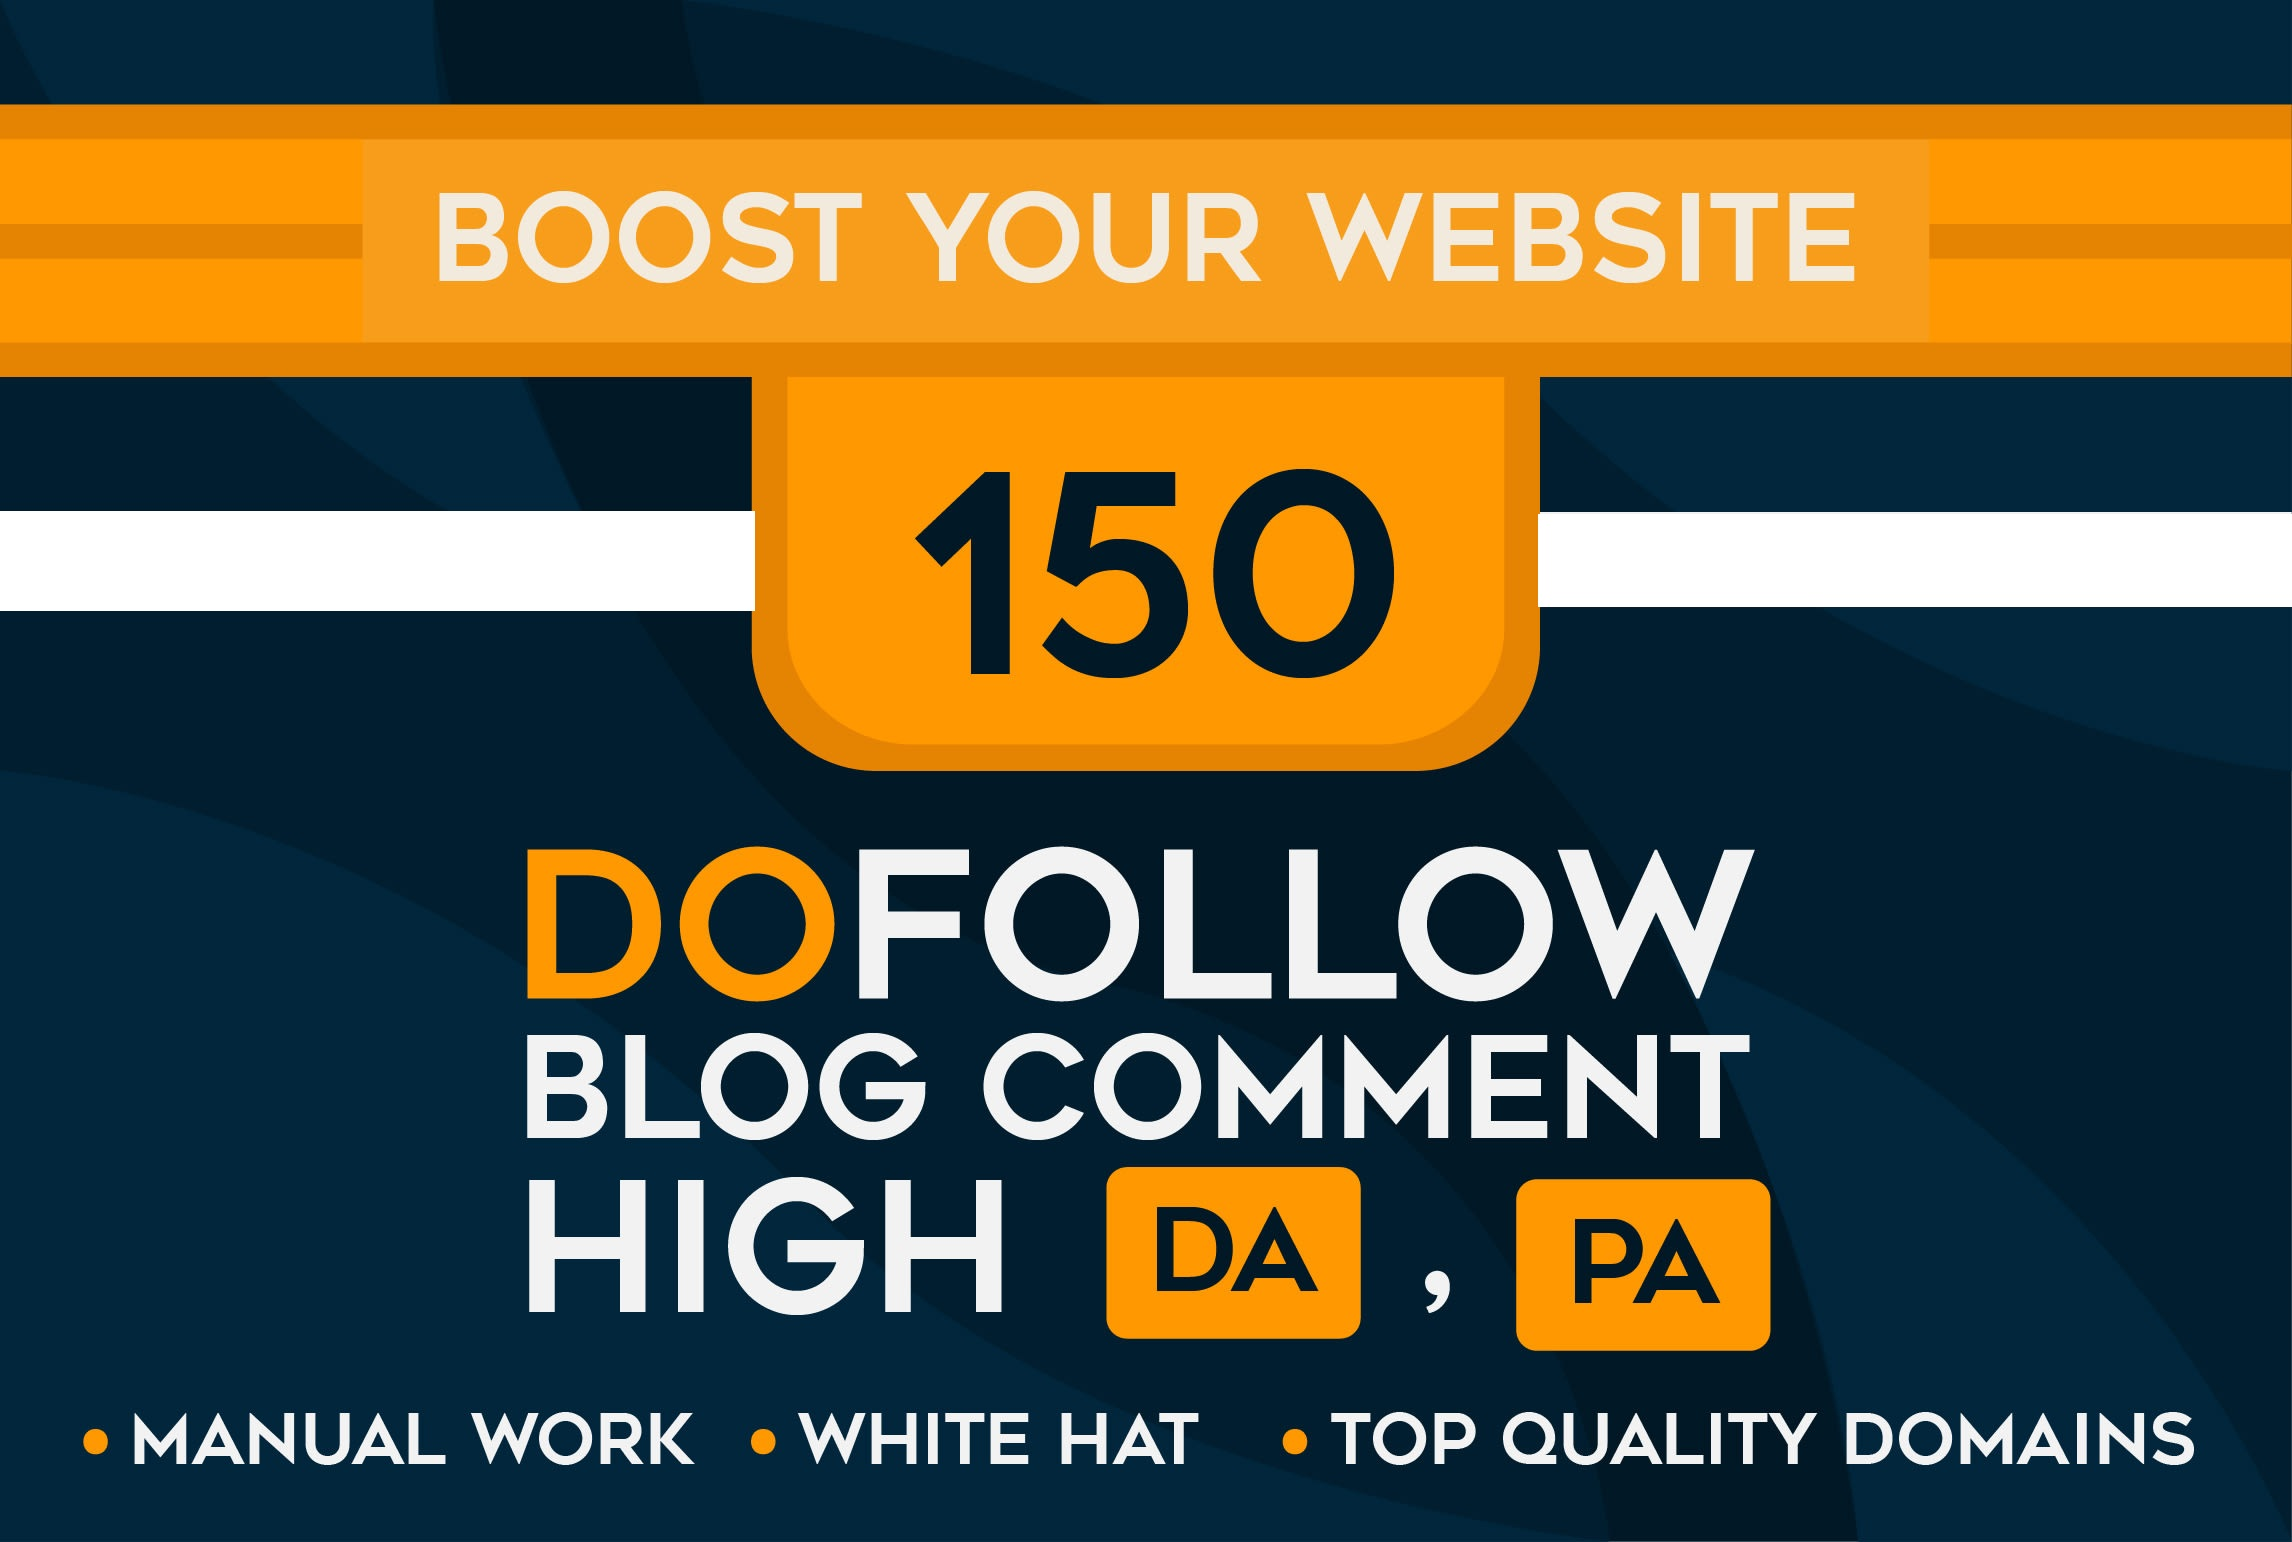 I will Create 150 dofollow manual high da pa blog commenting